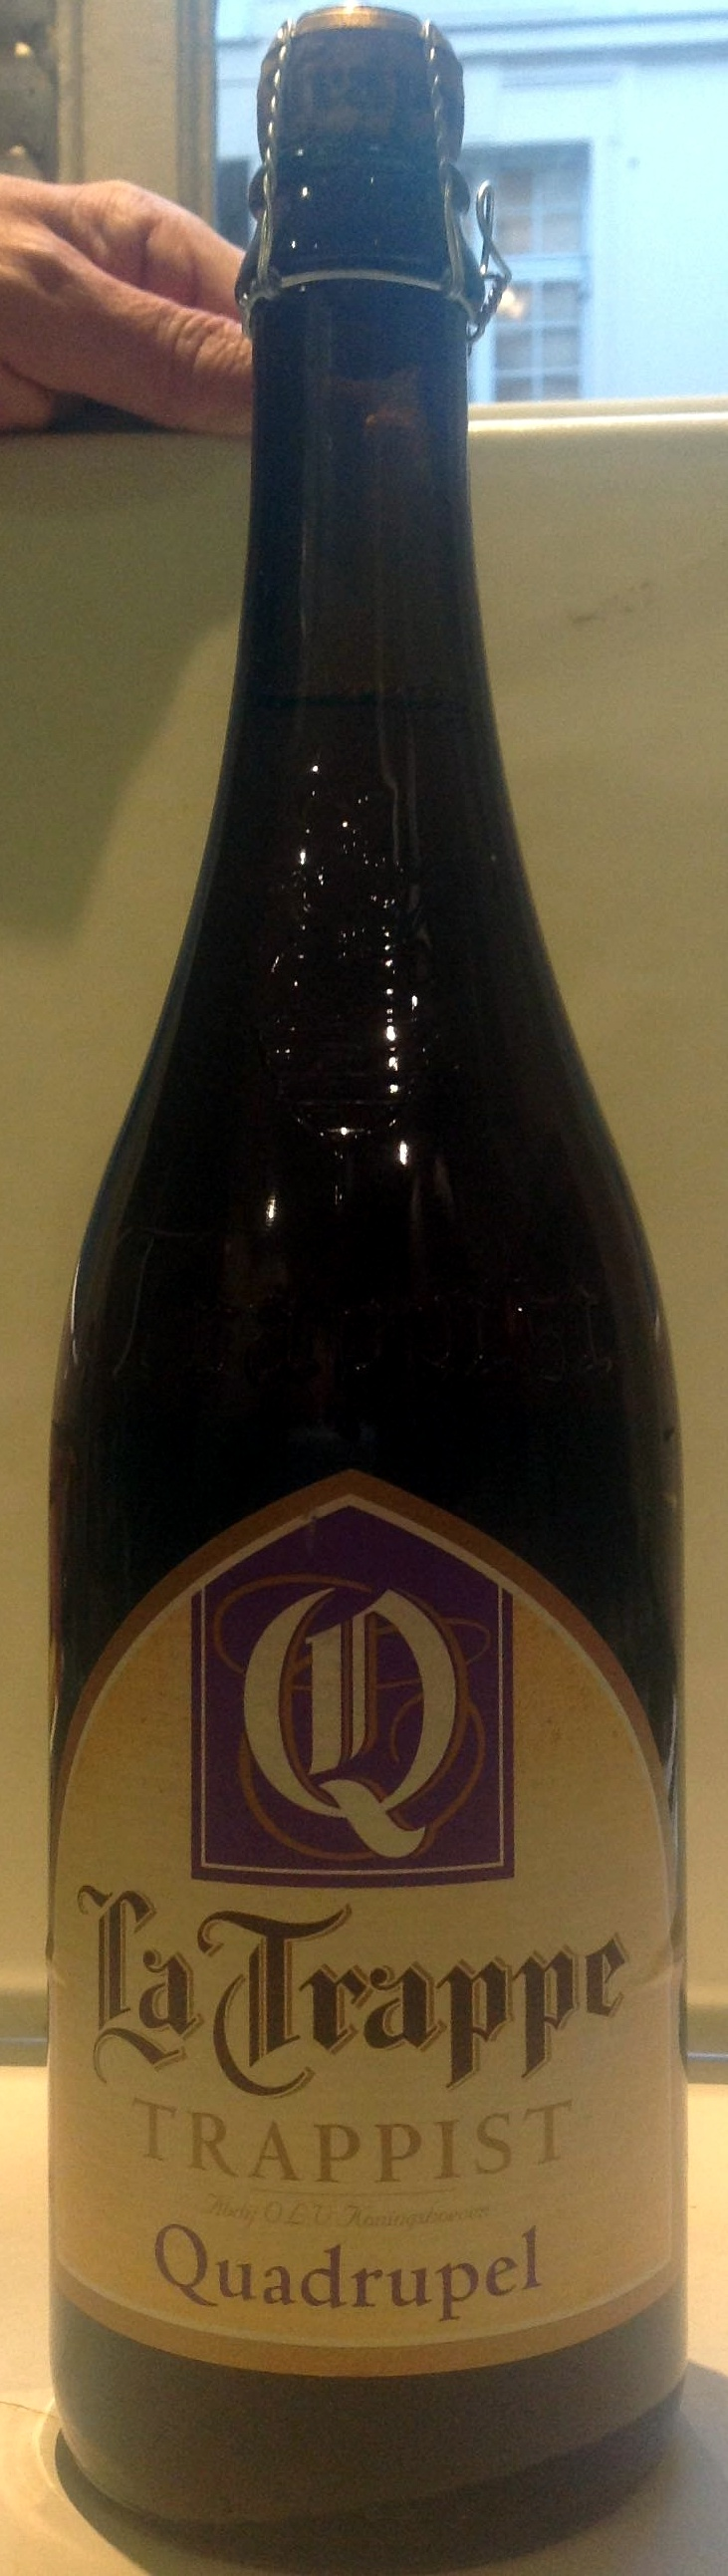 Picture of: La Trappe Trappist Amber Quadruppel 75 Cl Fles